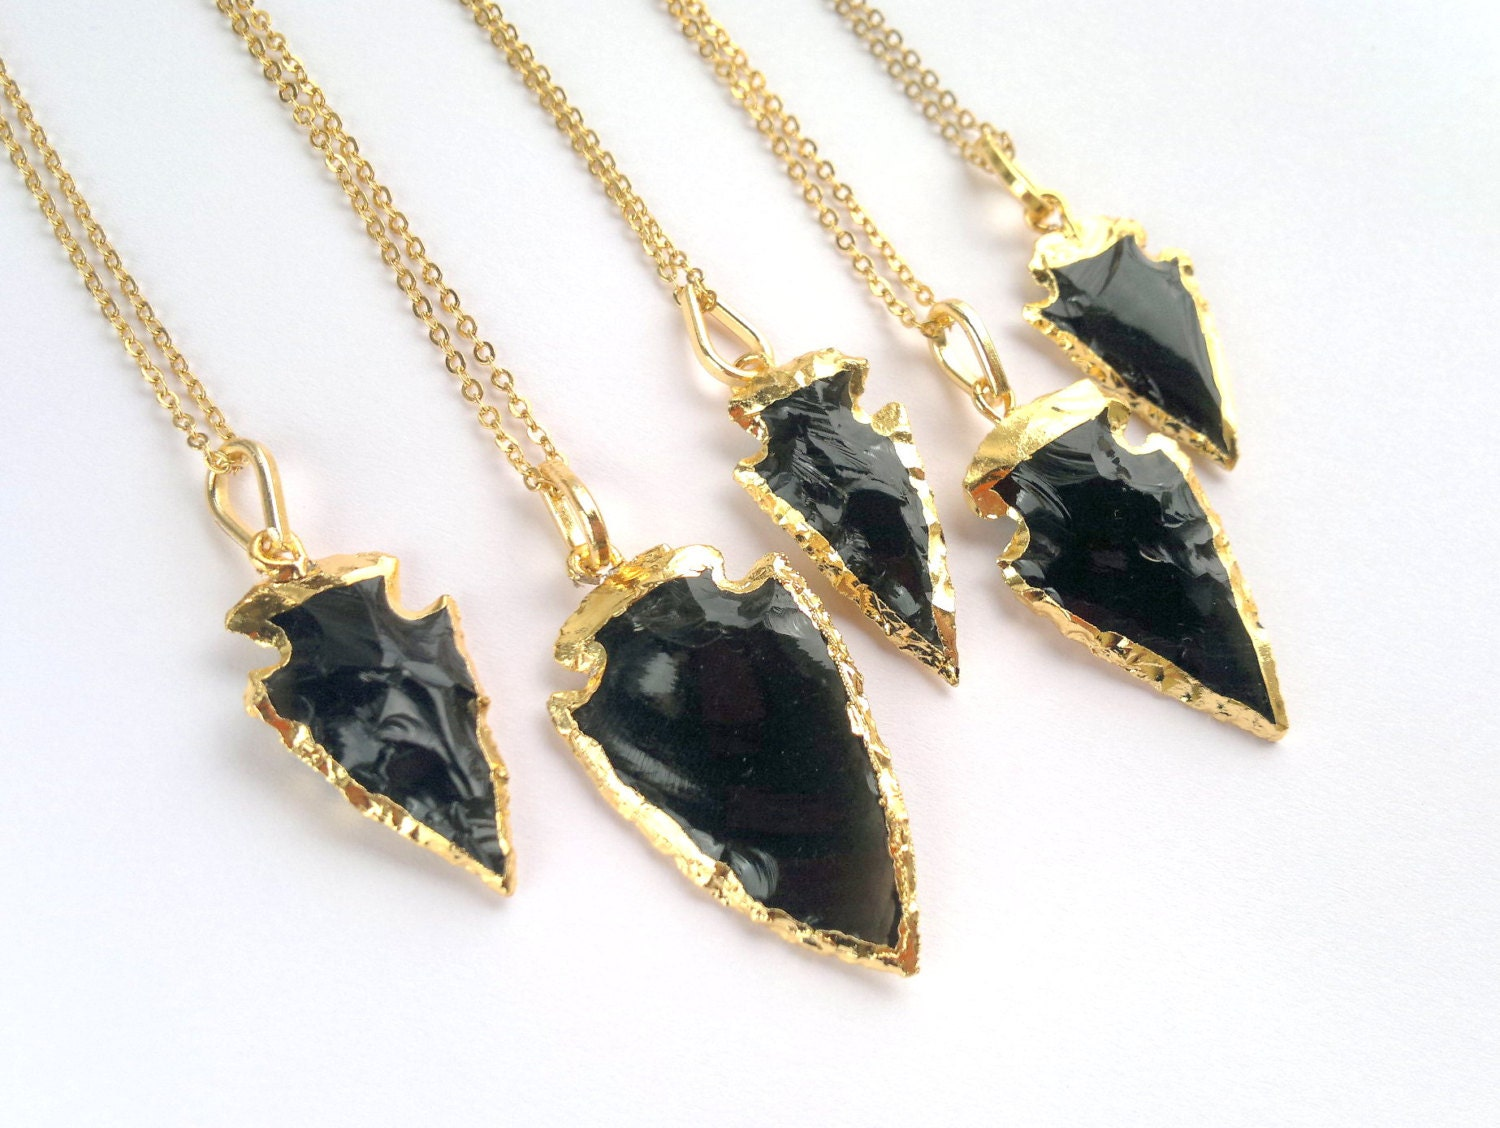 dating obsidian arrowheads Arrowheads: most of us grow up knowing exactly what an arrowhead is like agate or obsidian, lashed to the end of either a spear or and arrow's shaft.